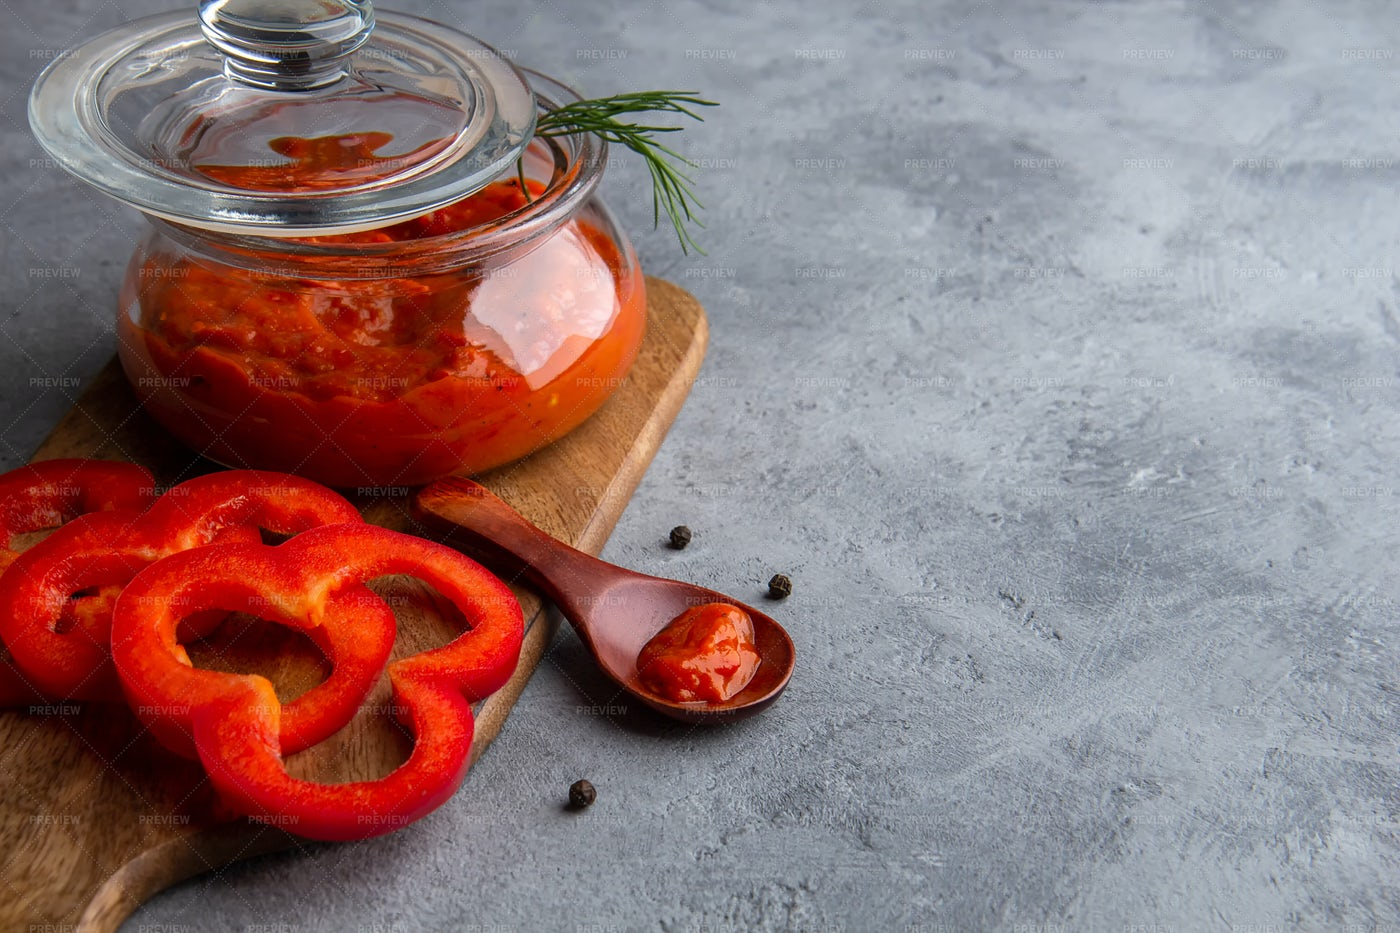 Glass Jar Of Ajvar: Stock Photos